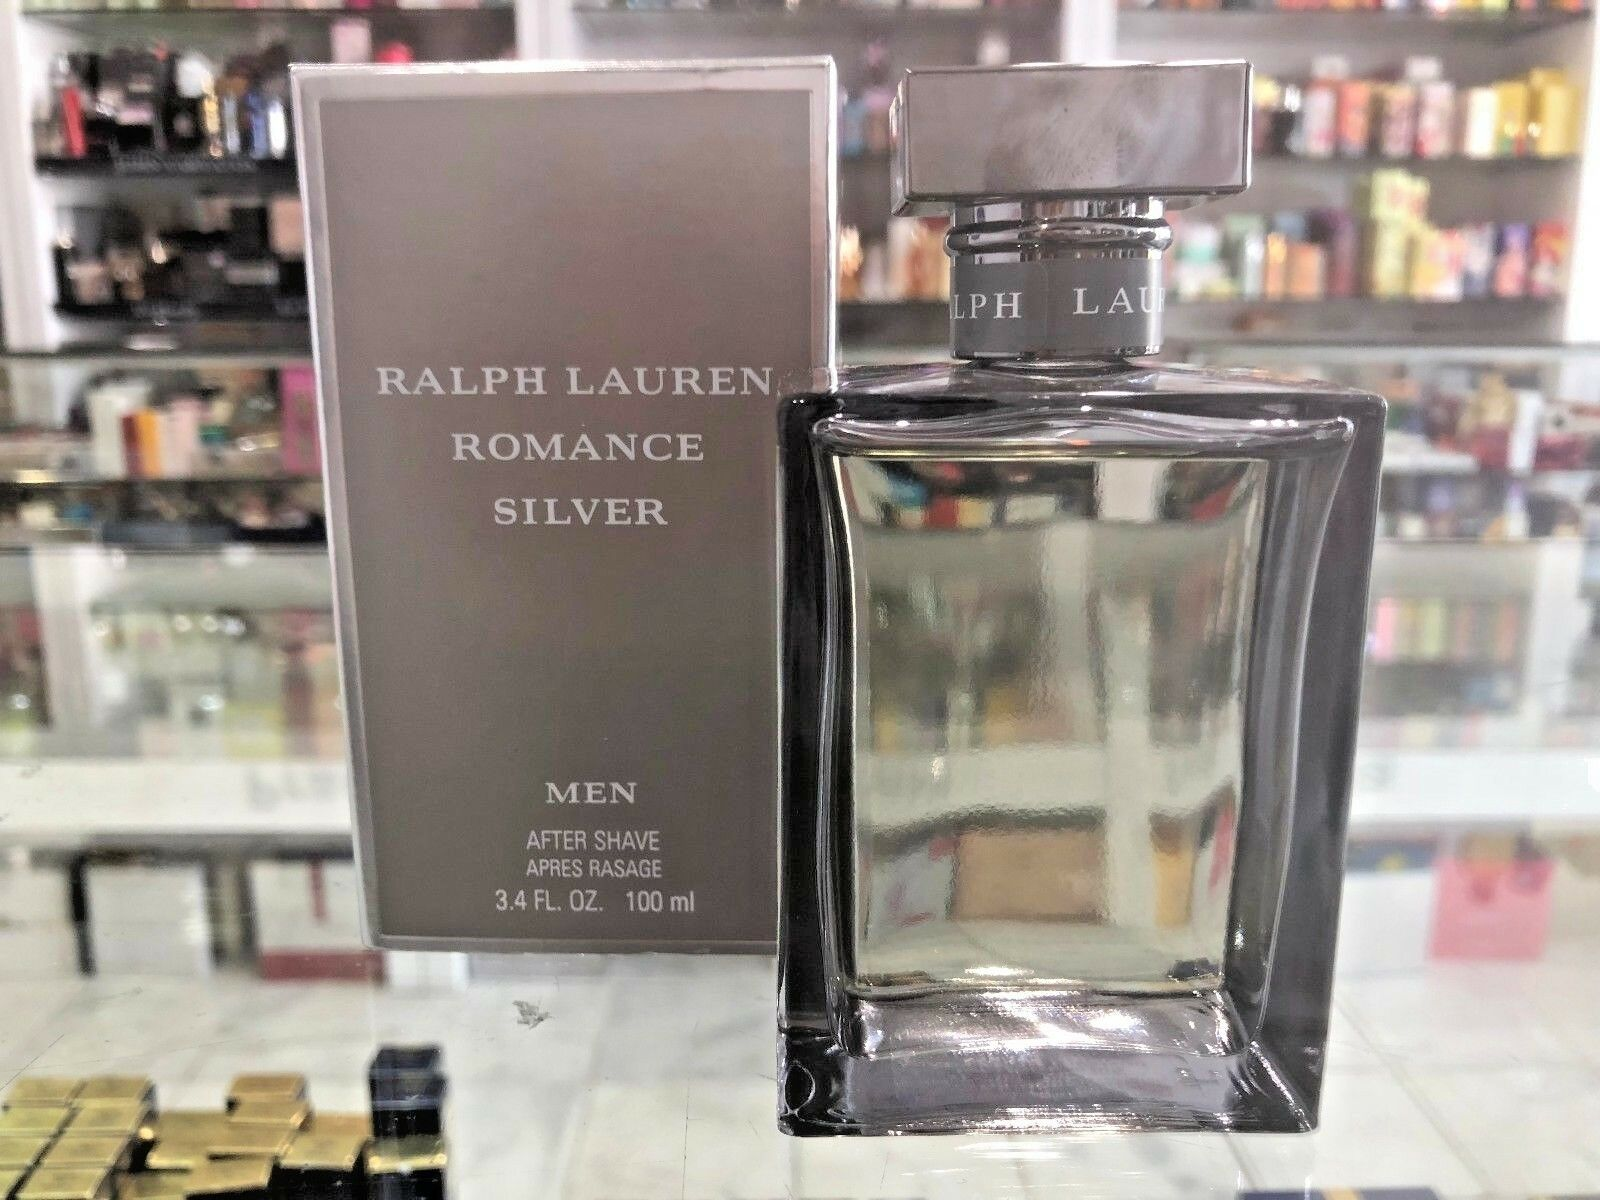 bc69e2ffd Ralph Lauren Romance Silver for Men After Shave 100ml for sale ...